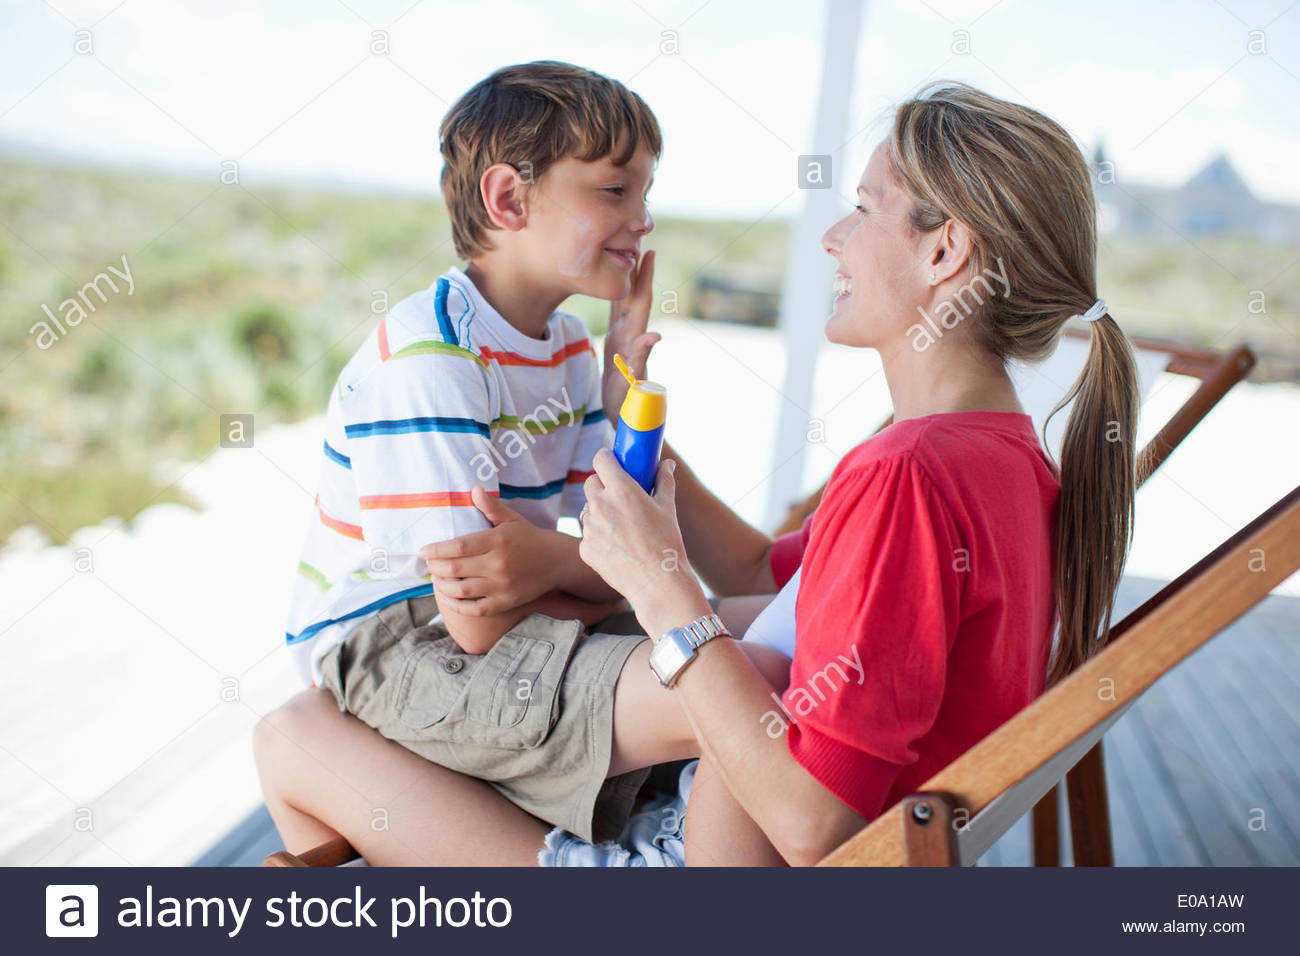 Mother putting sunscreen on boy - Stock Image